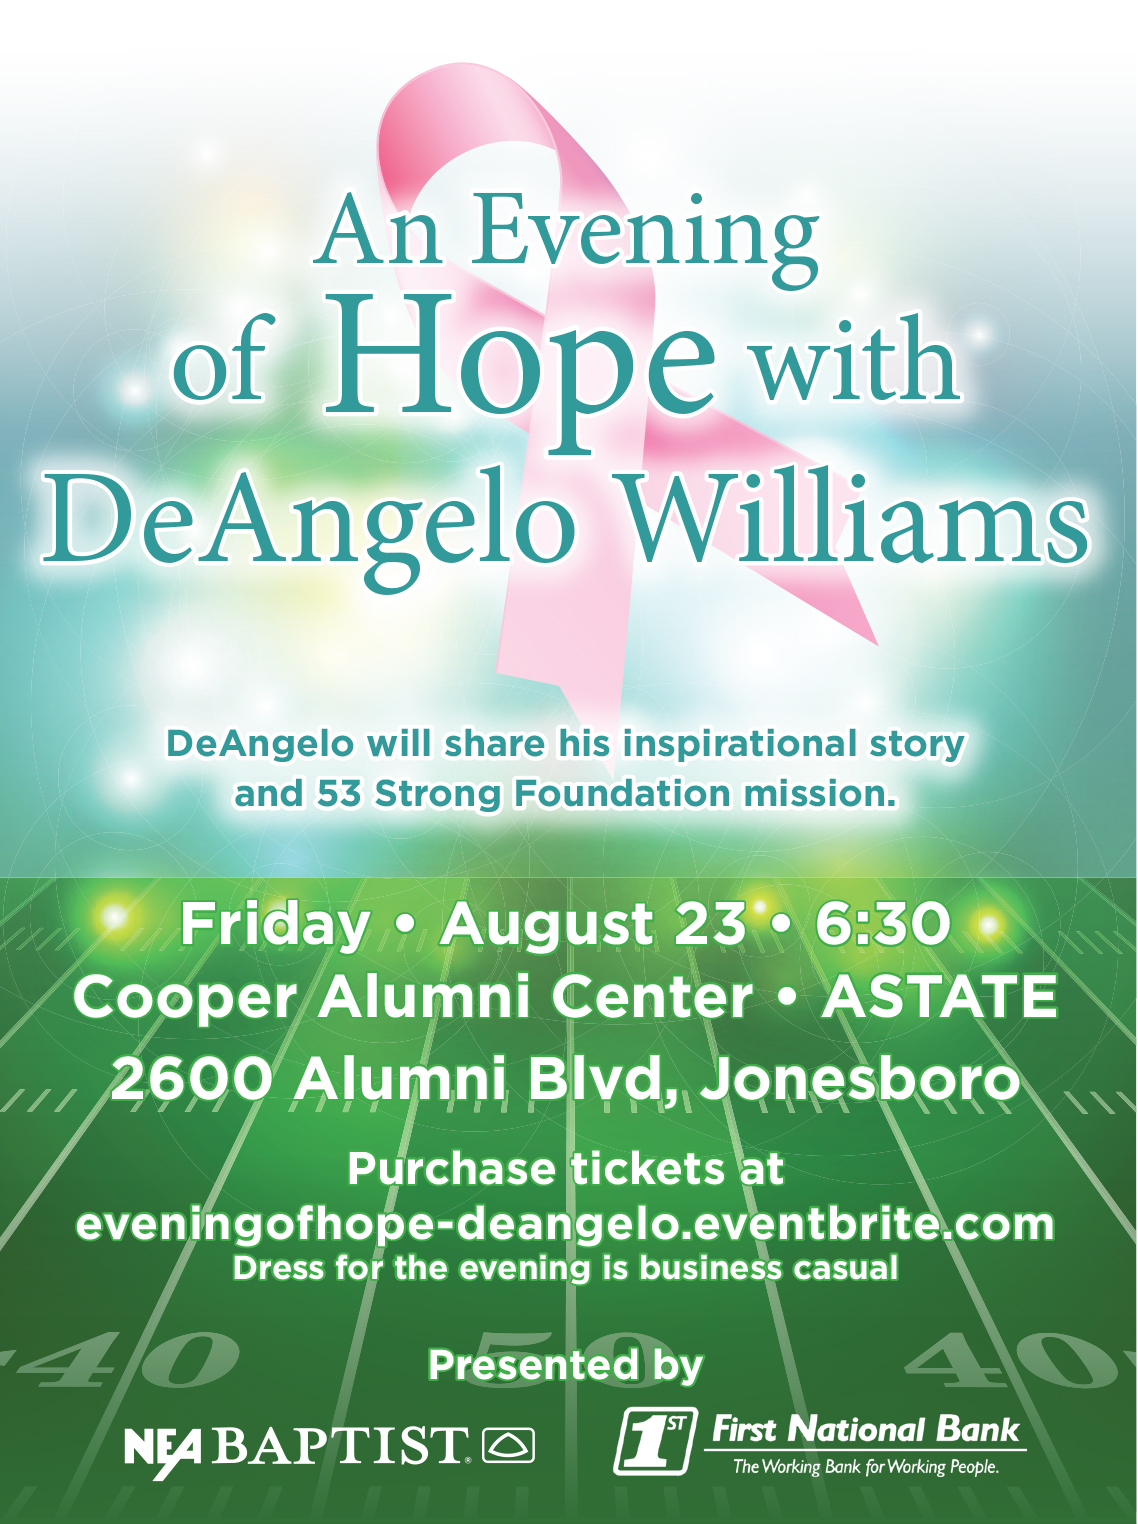 An Evening of Hope with DeAngelo Williams - NEA Baptist Charitable